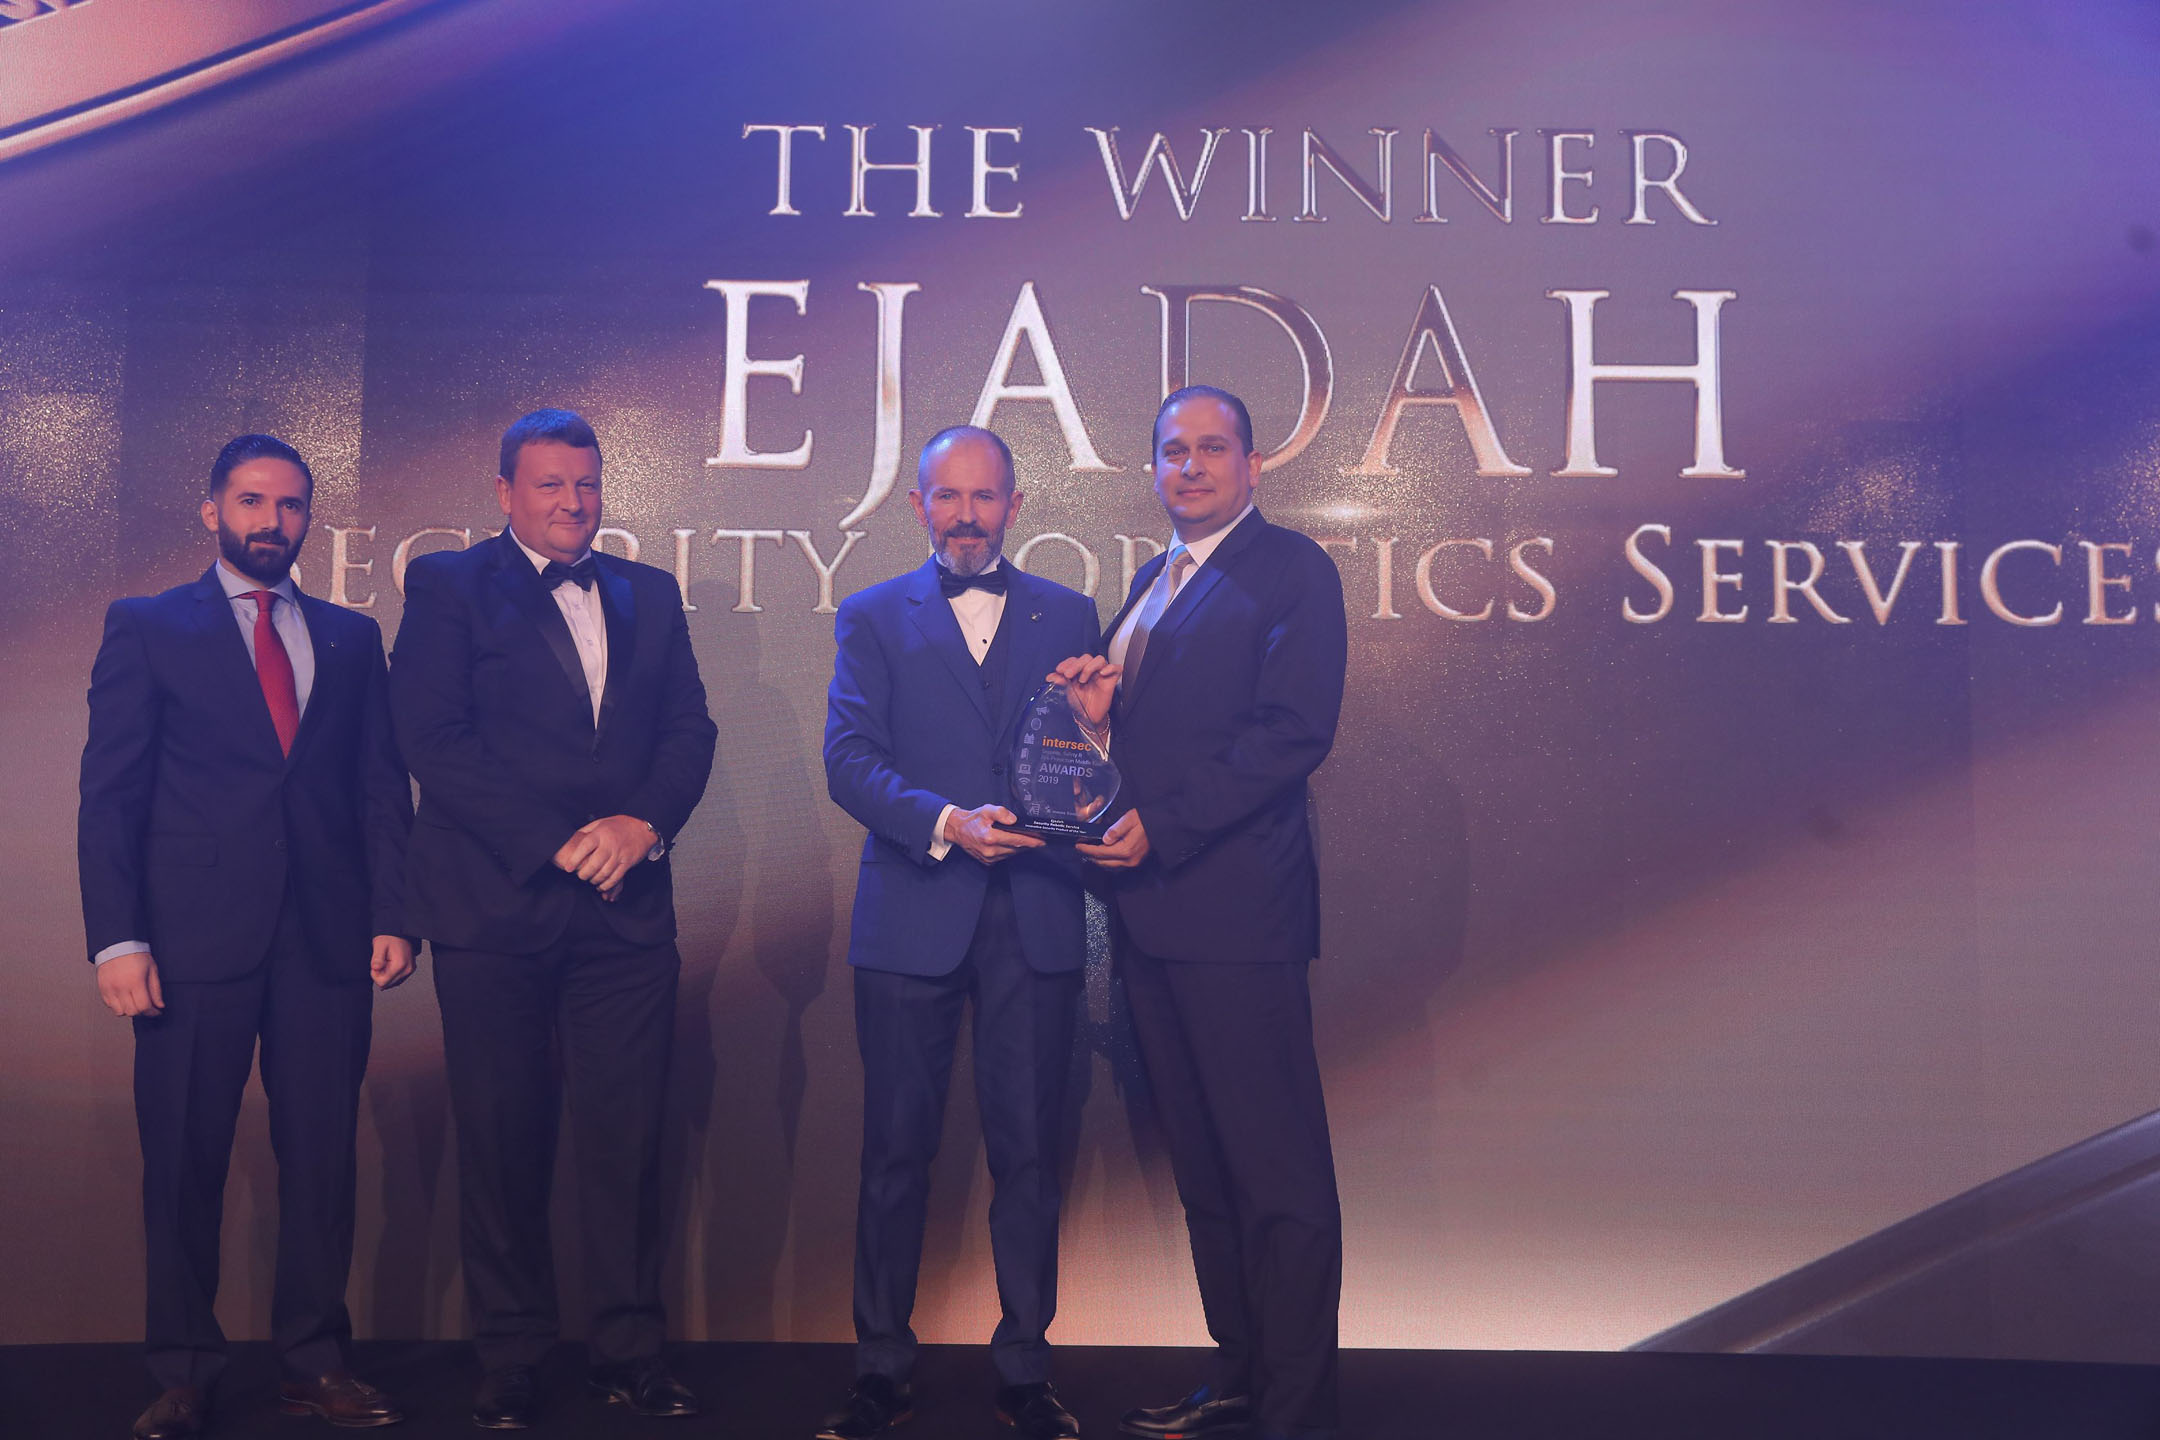 Ejadah for Innovative Security of the Year